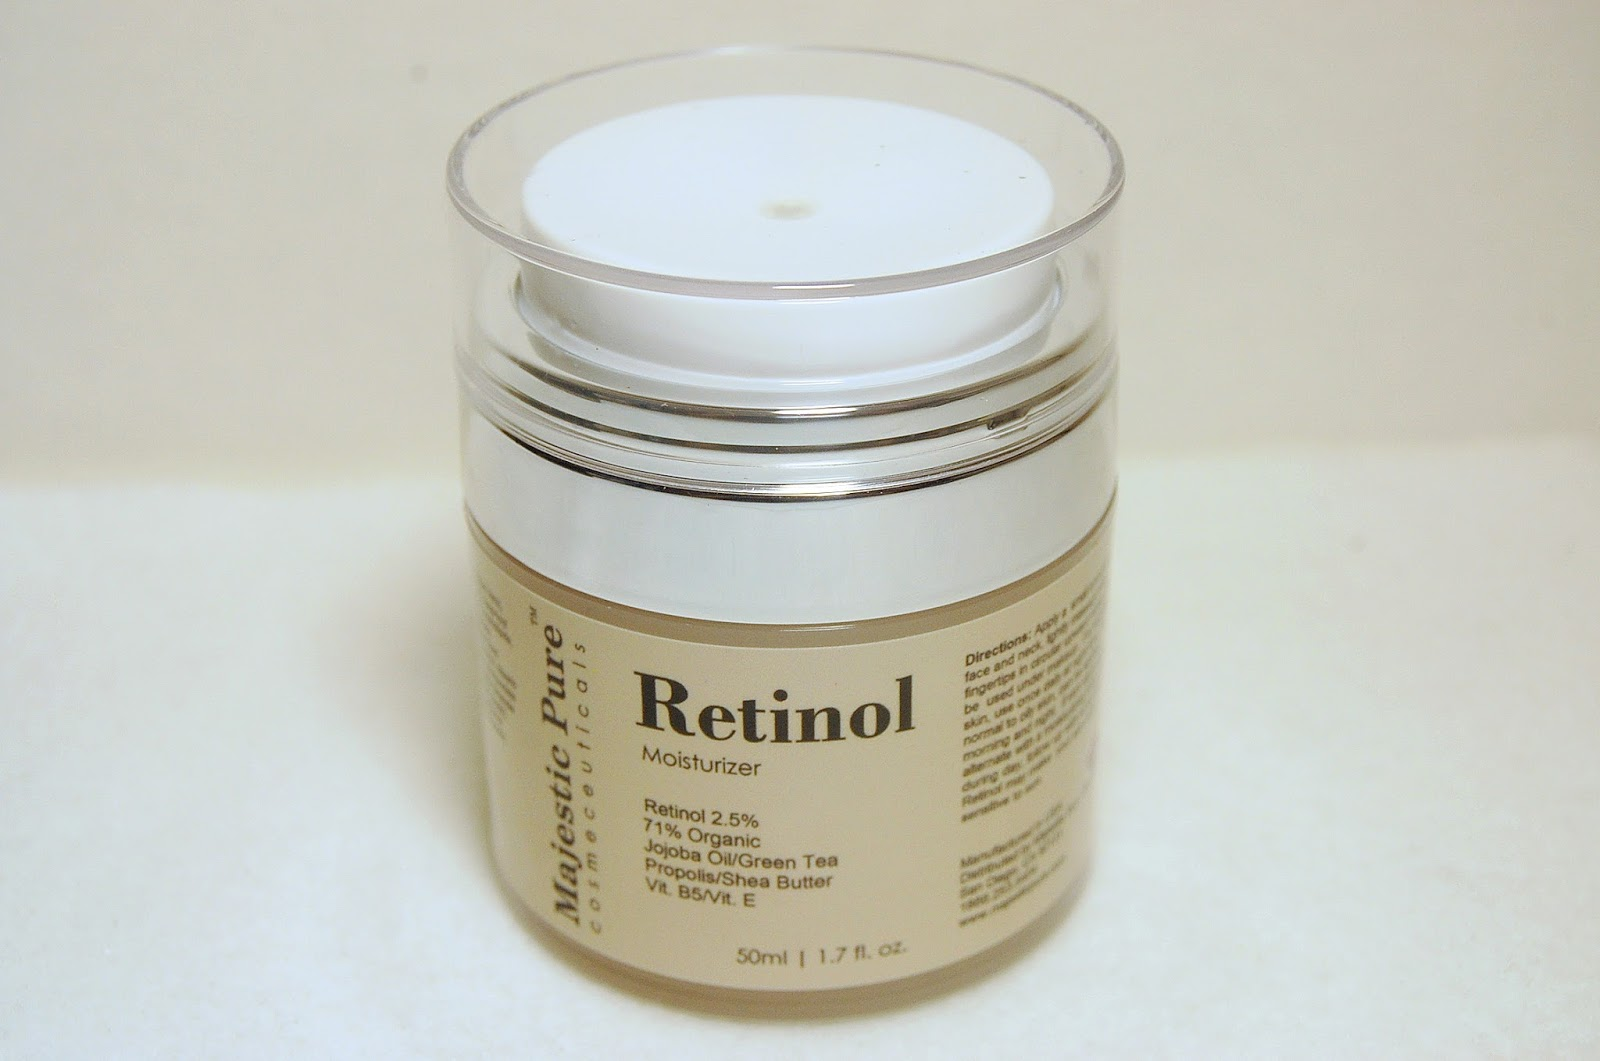 Retinol amounts in moisturizers - I Just Press Lightly On The Top Disc And The Moisturizer Is Expelled Through A Hole In The Middle The Amount Of